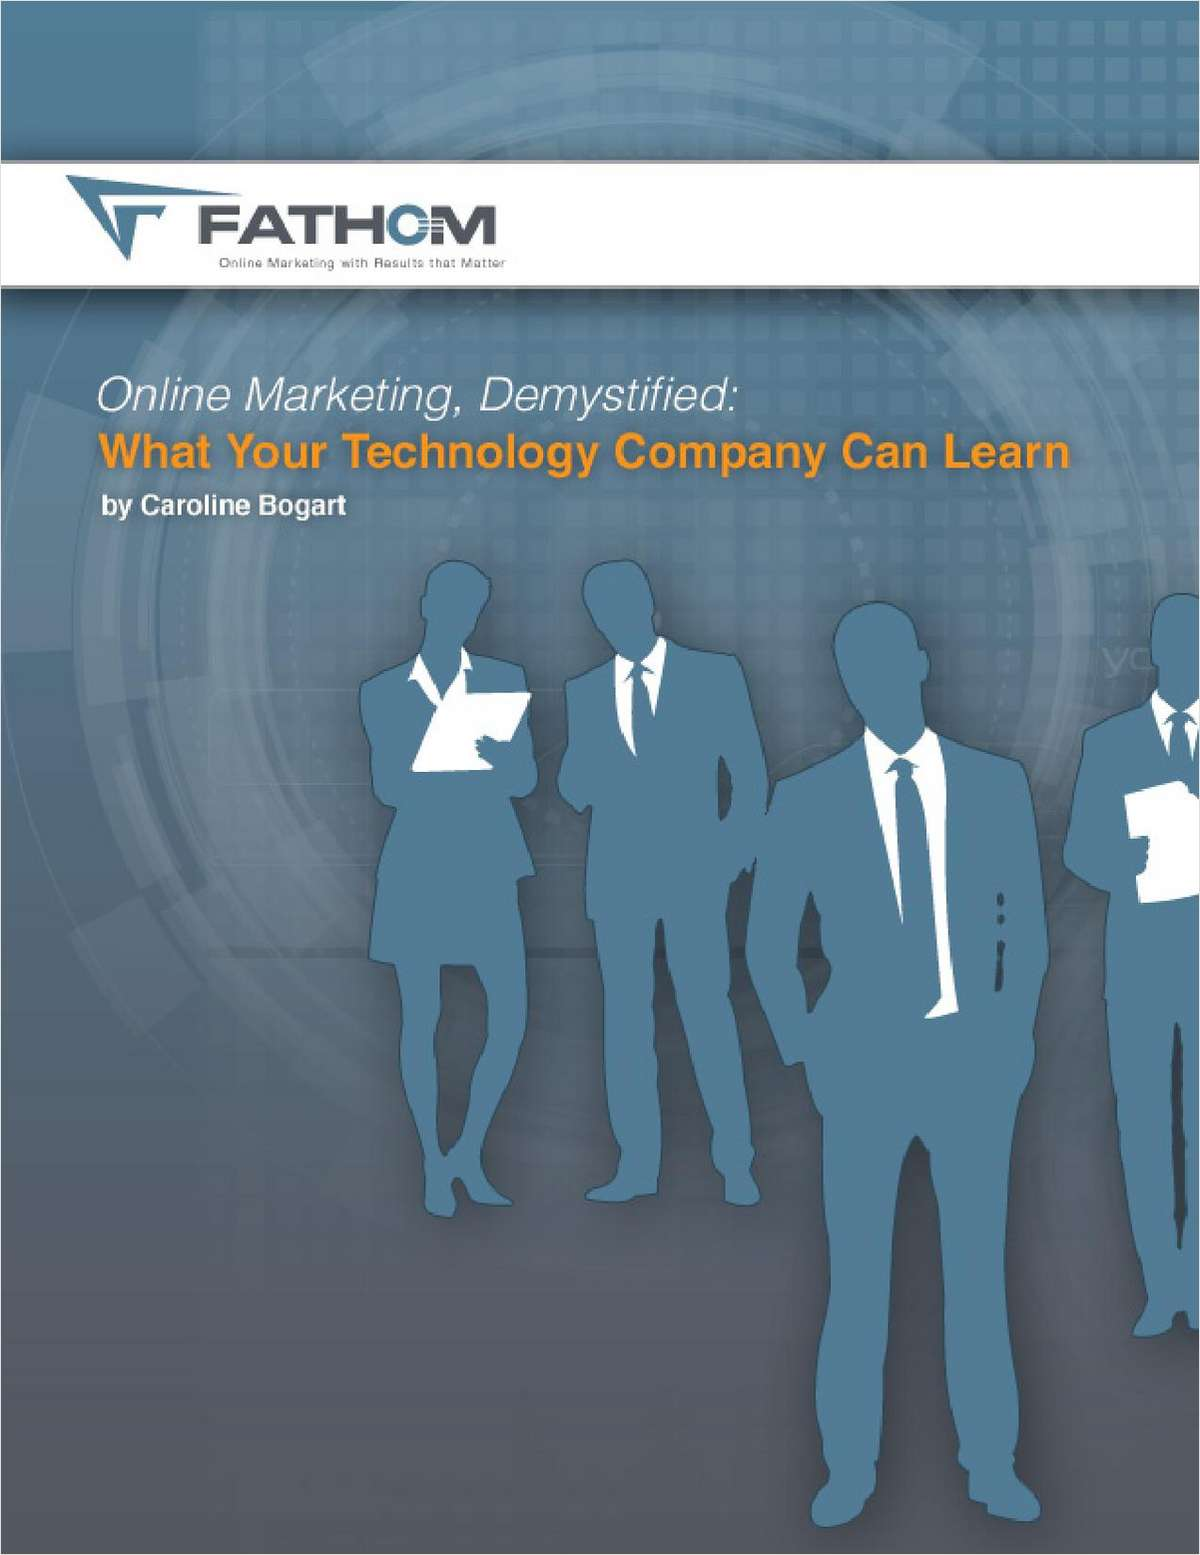 Online Marketing Demystified: Lessons for Your Tech Company